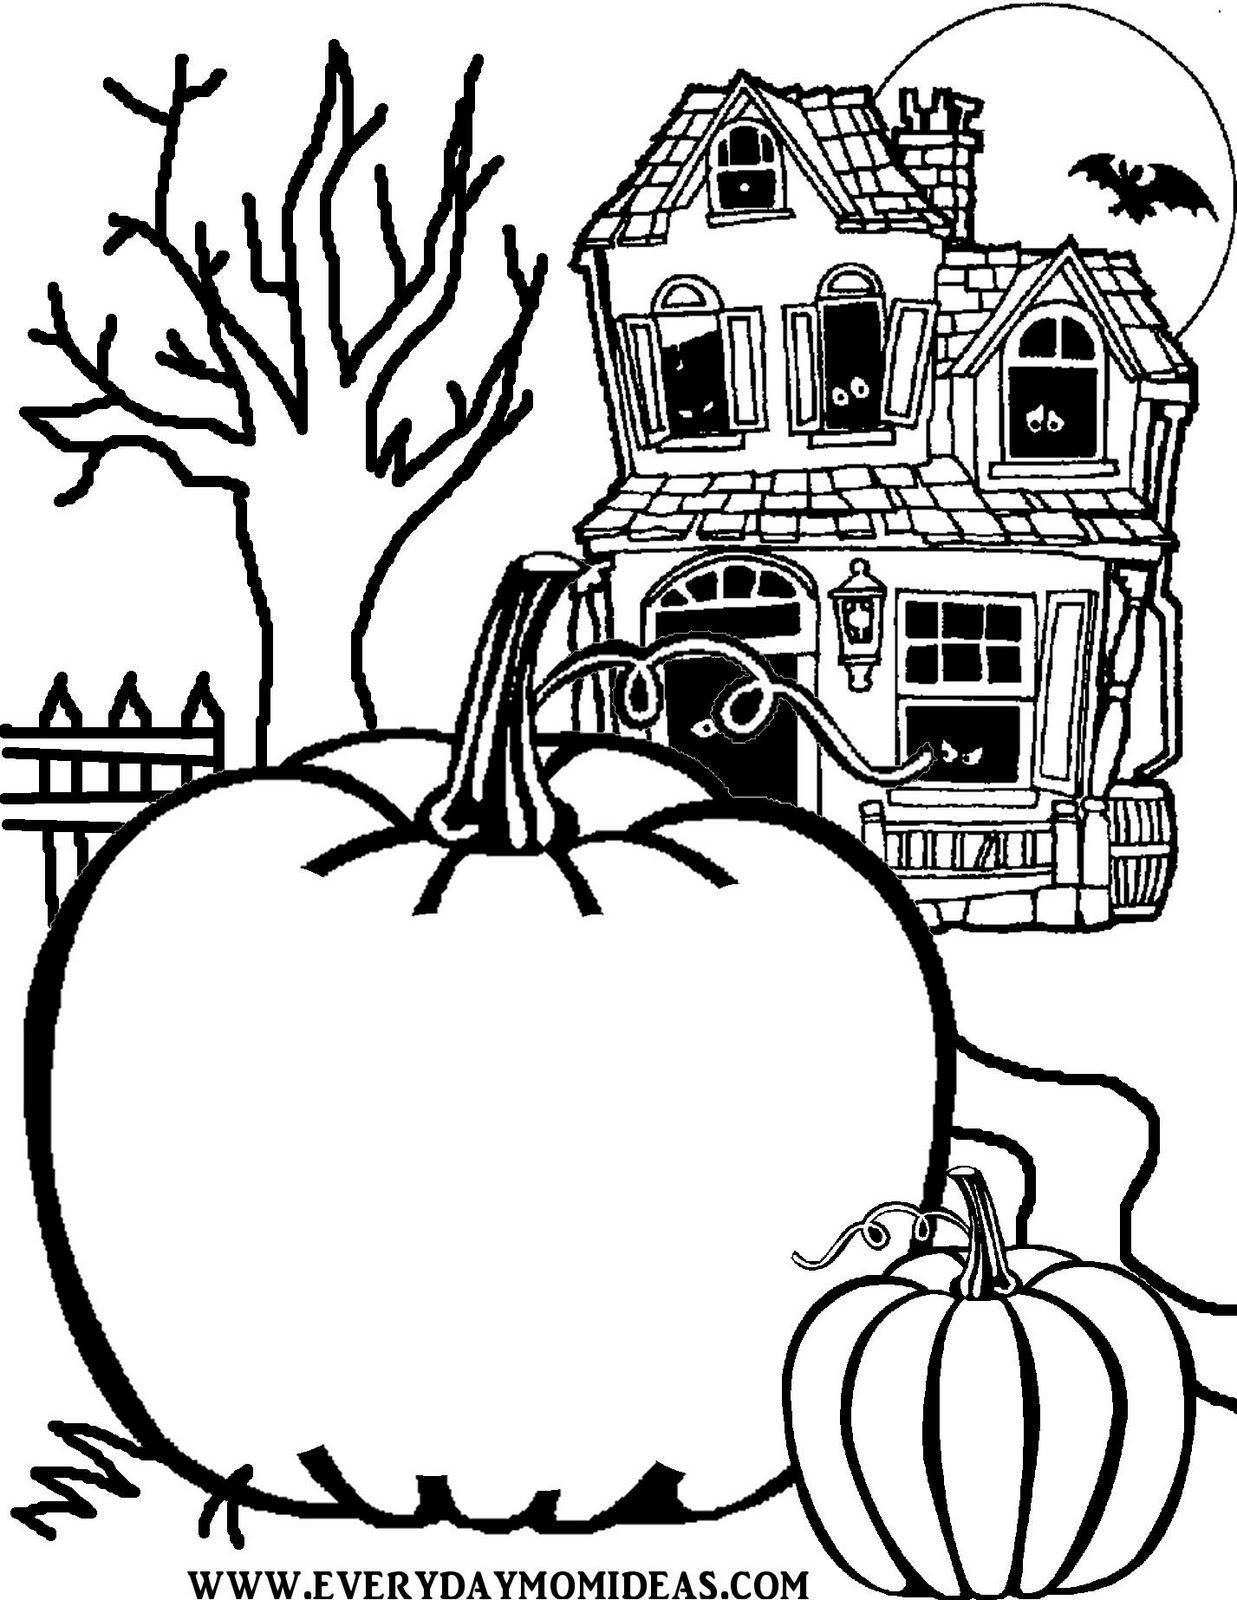 Do You Think This Picture Is Appropriate Page 10 Halloween Coloring Pages Halloween Coloring Pumpkin Coloring Pages